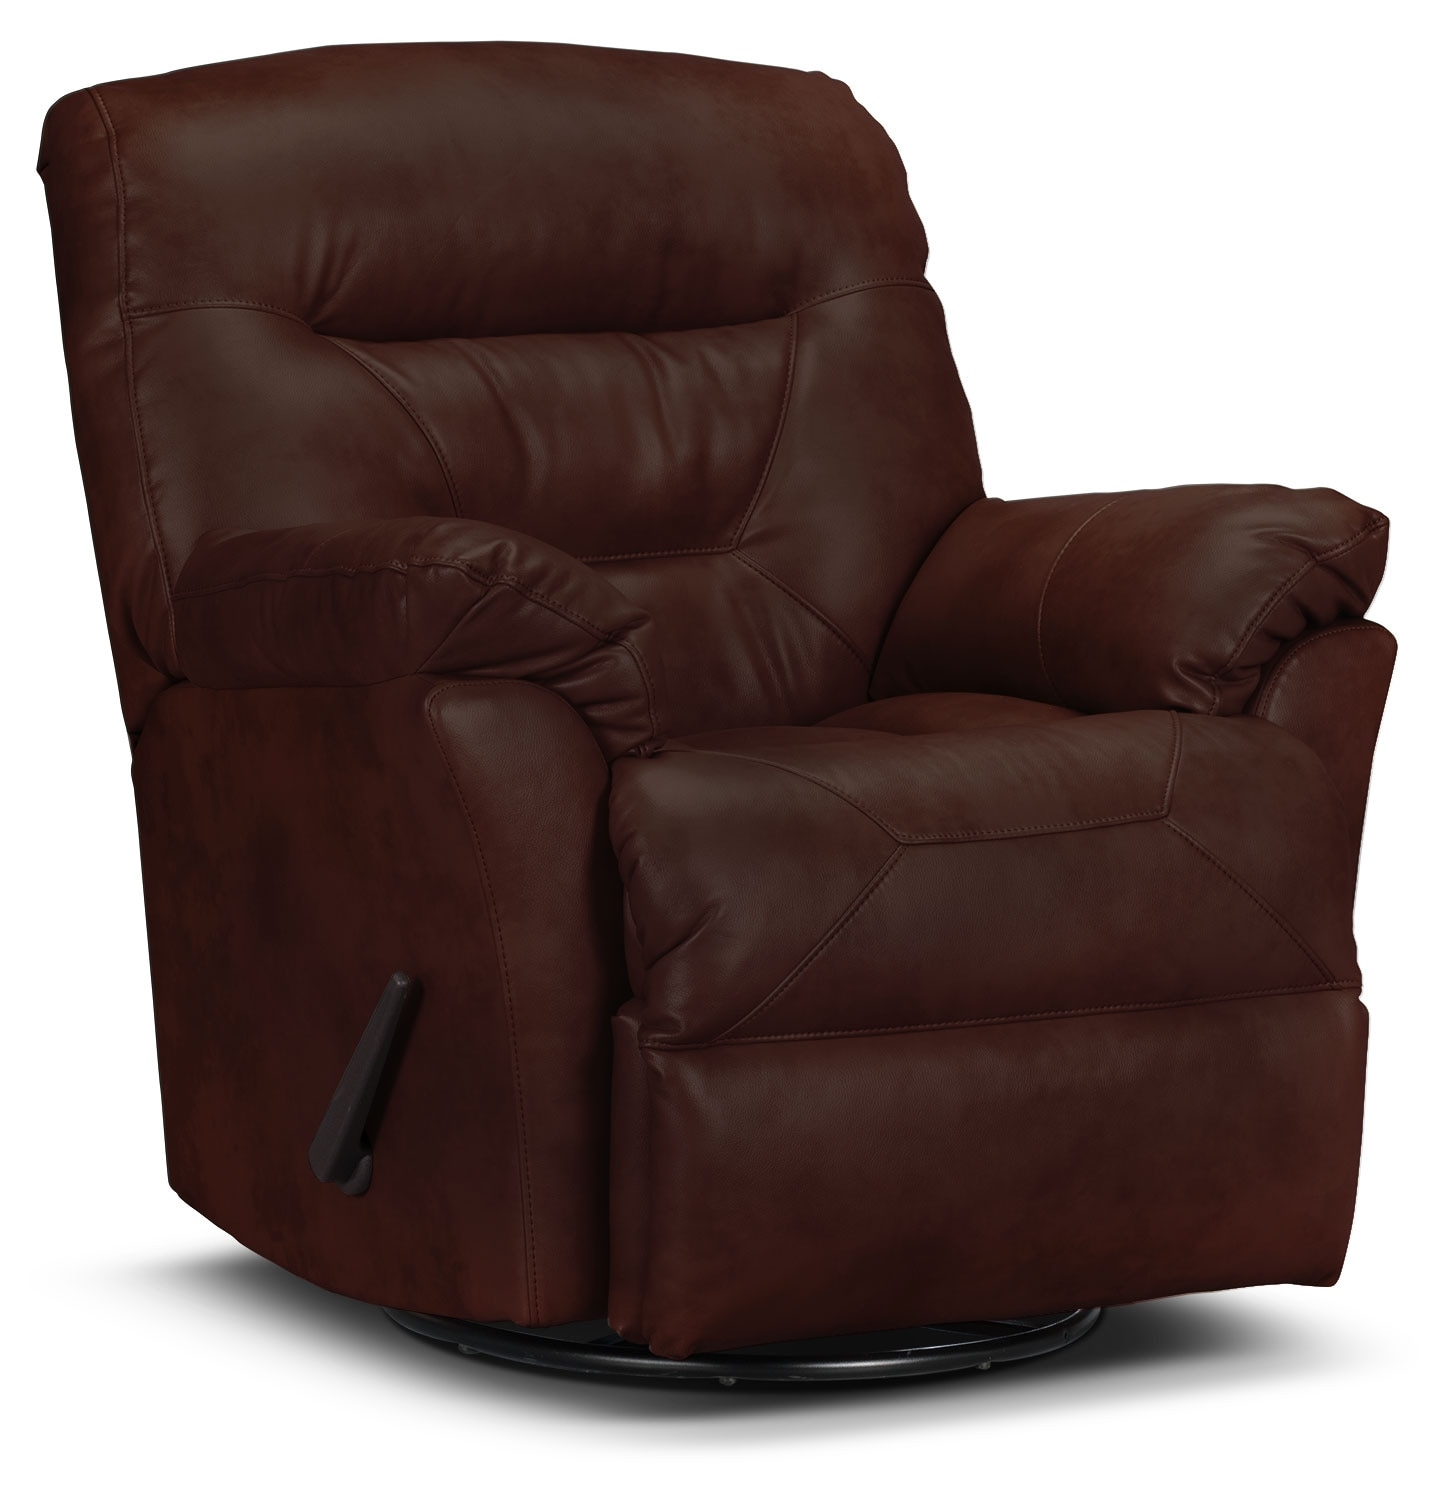 Real Leather Recliner Chairs Designed2b Recliner 4579 Genuine Leather Swivel Glider